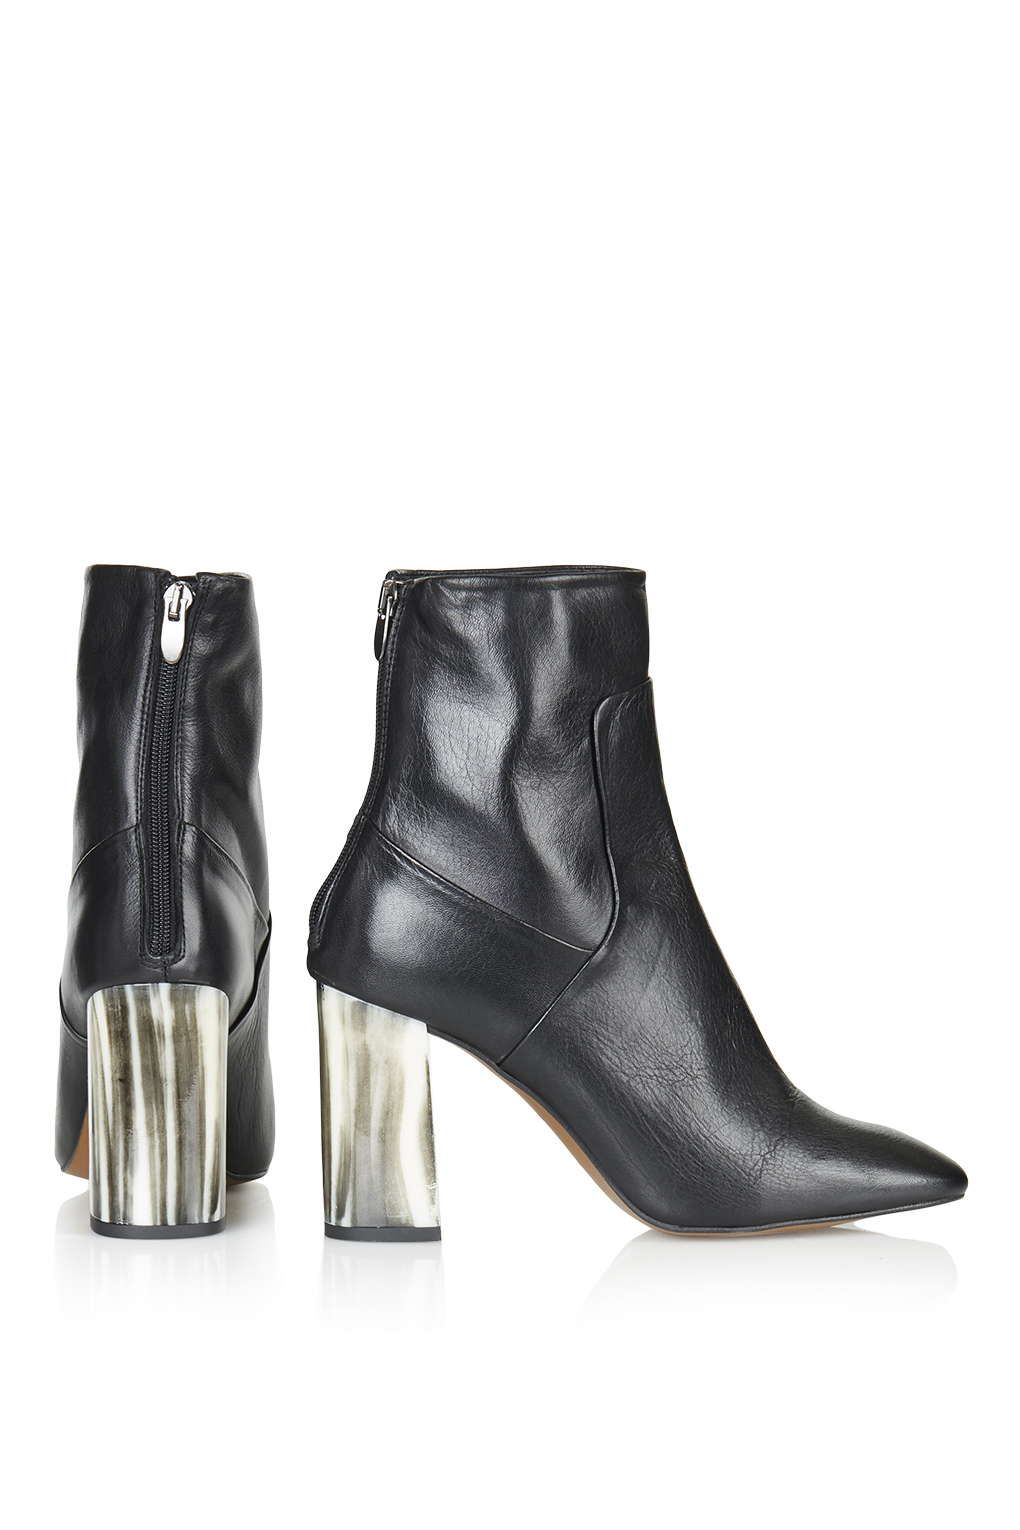 464278ae04bc Bone Of Heel Styley Boots Pinterest 3 X Photo Fashion Muse Zqwg4axT